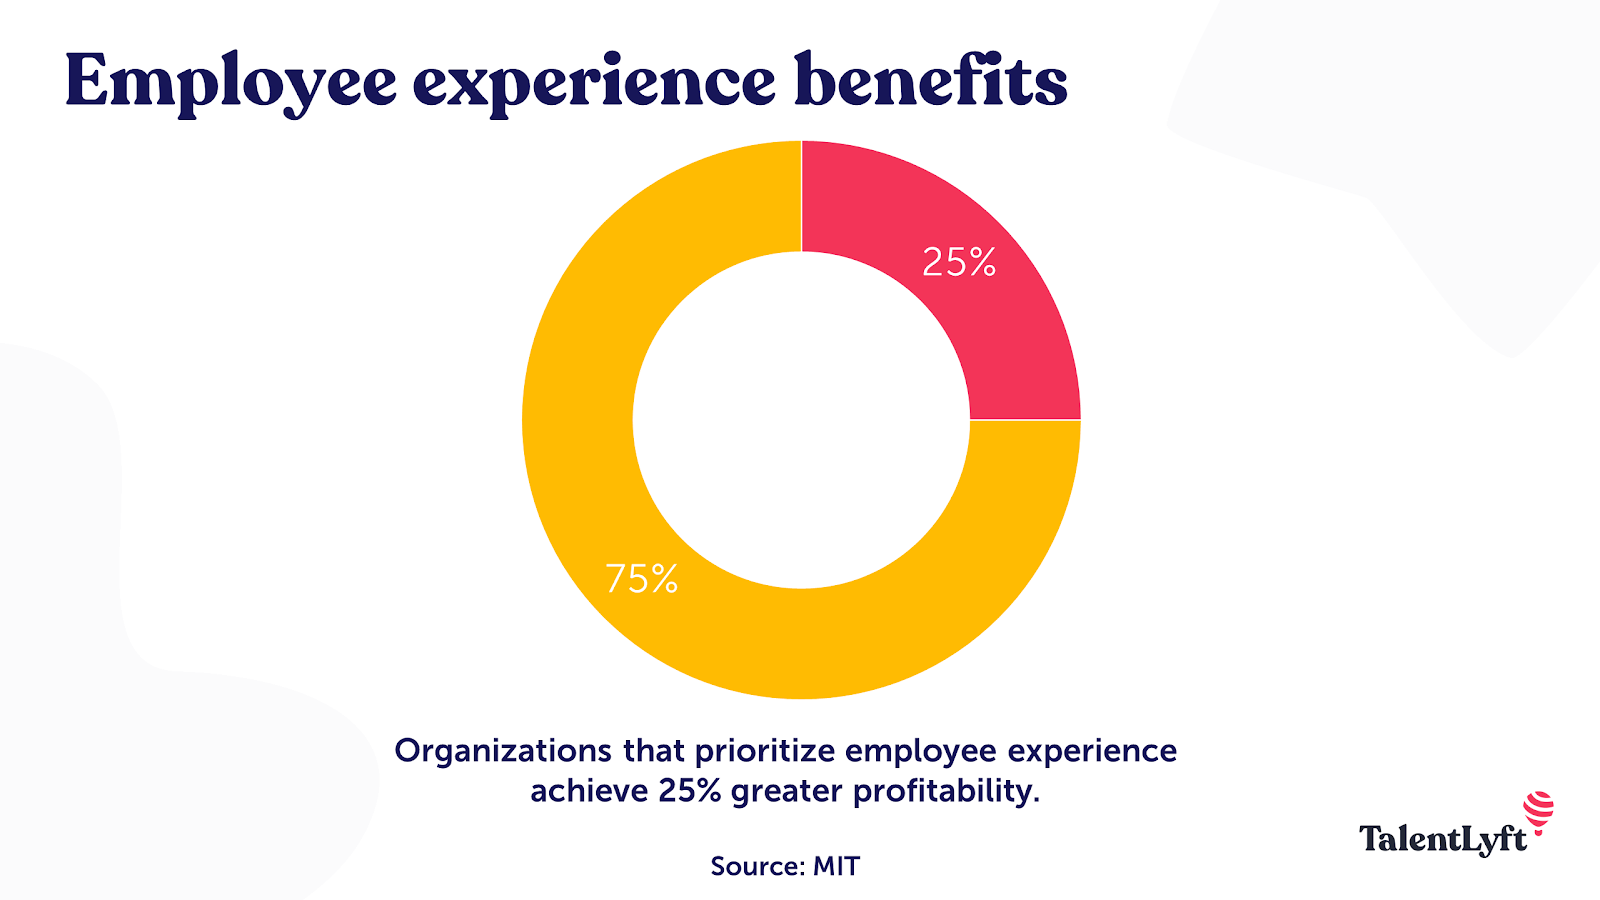 Employee experience benefits